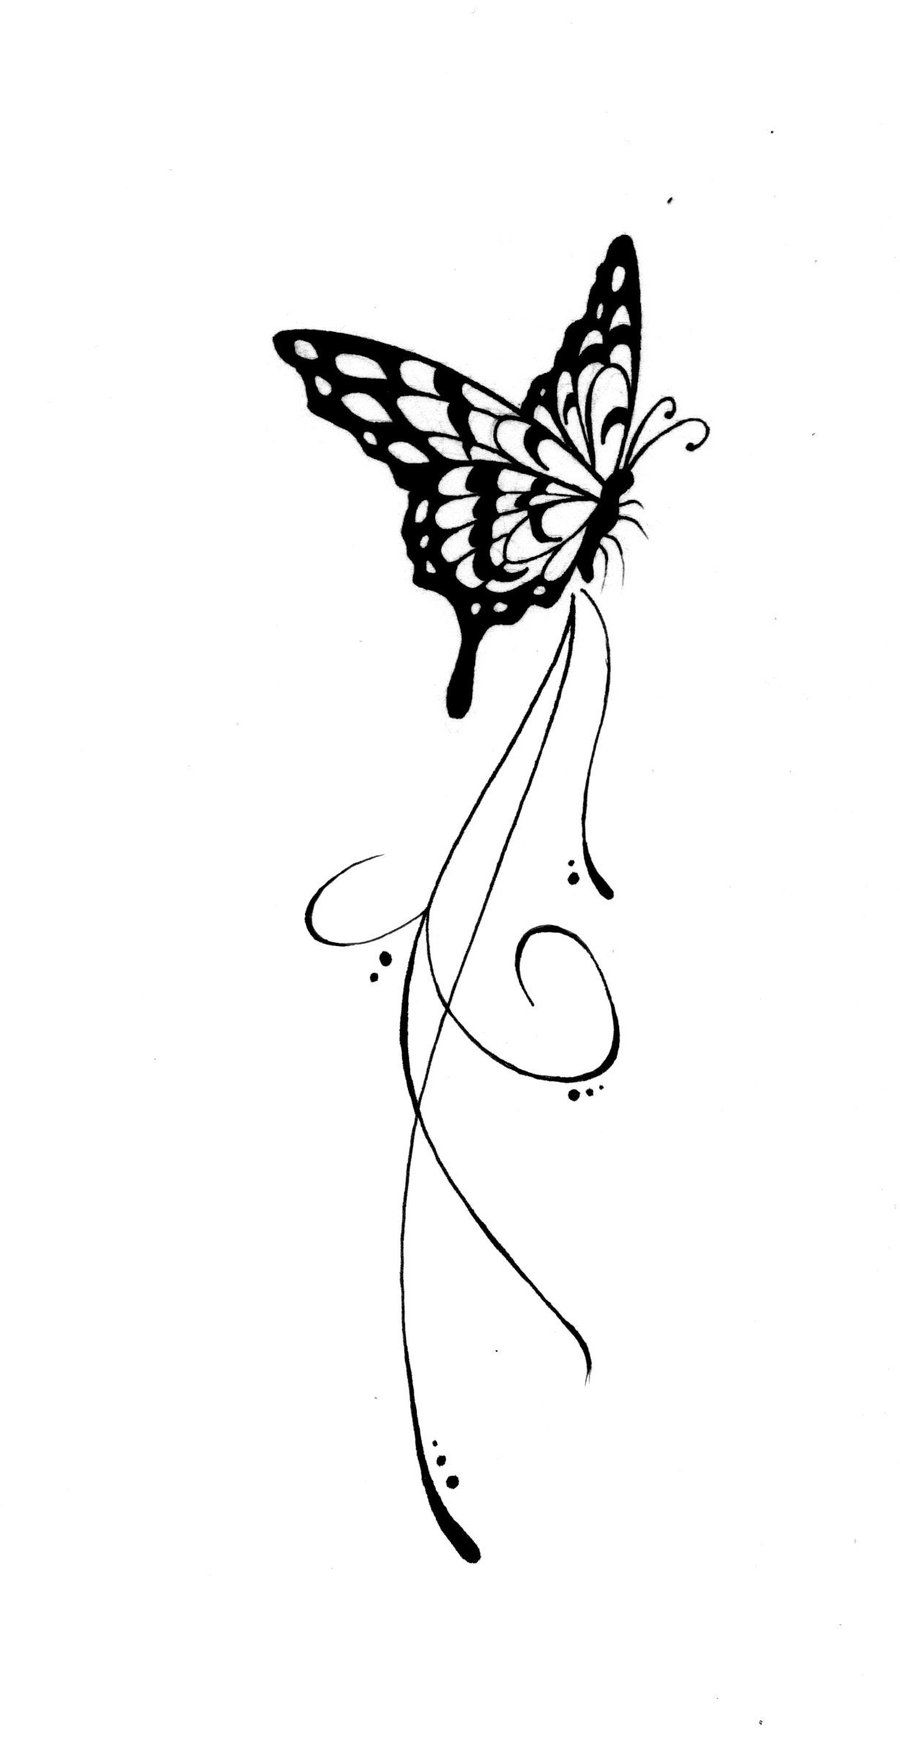 #thebutterflyproject : I want a similar tattoo to cover the scars on my wrists.